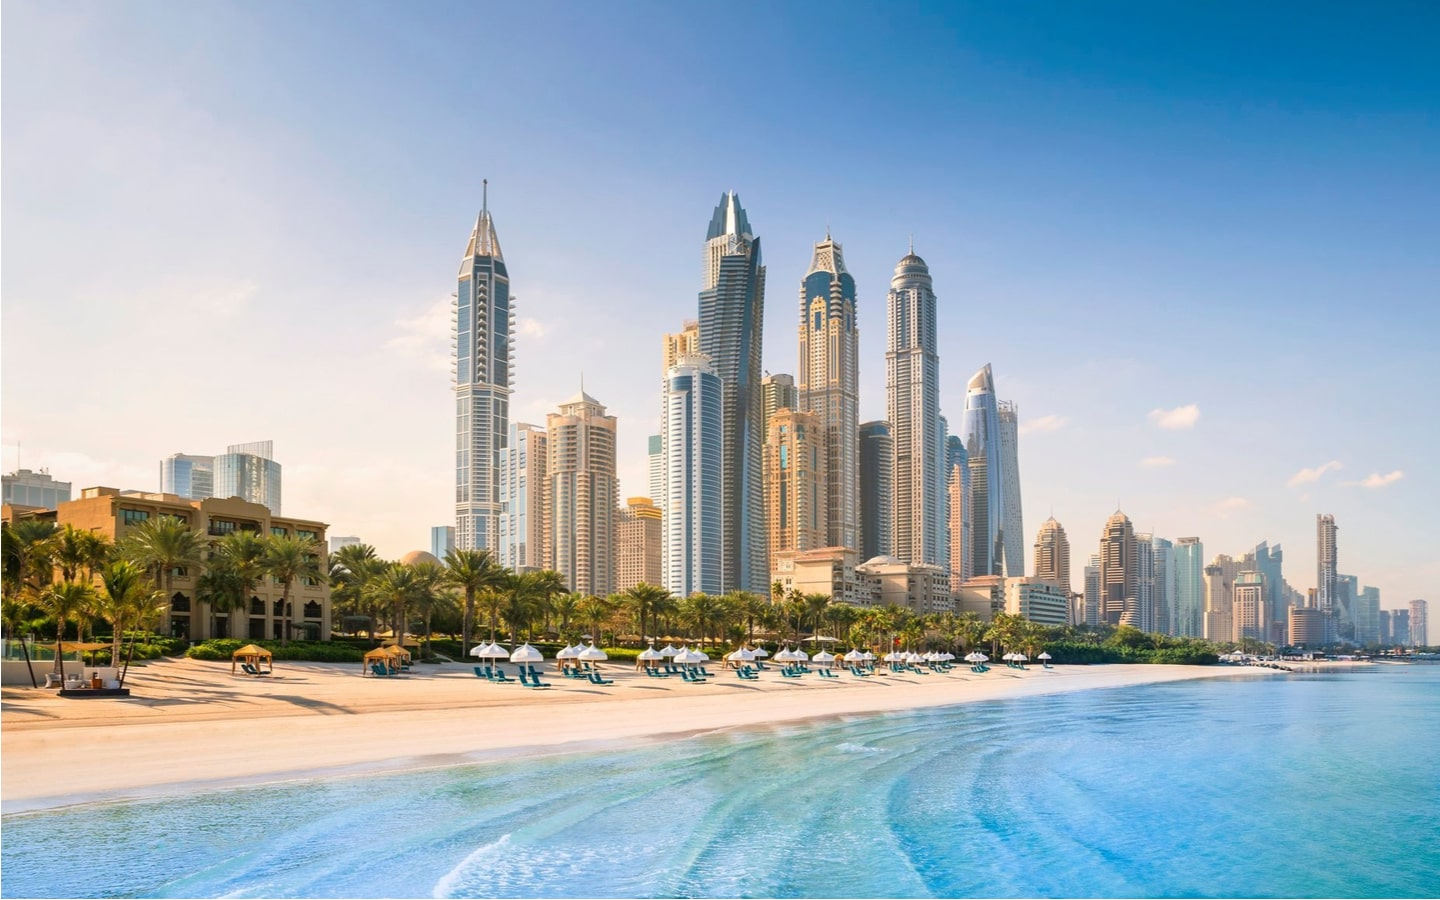 View of One and Only Royal Mirage private beach in Dubai